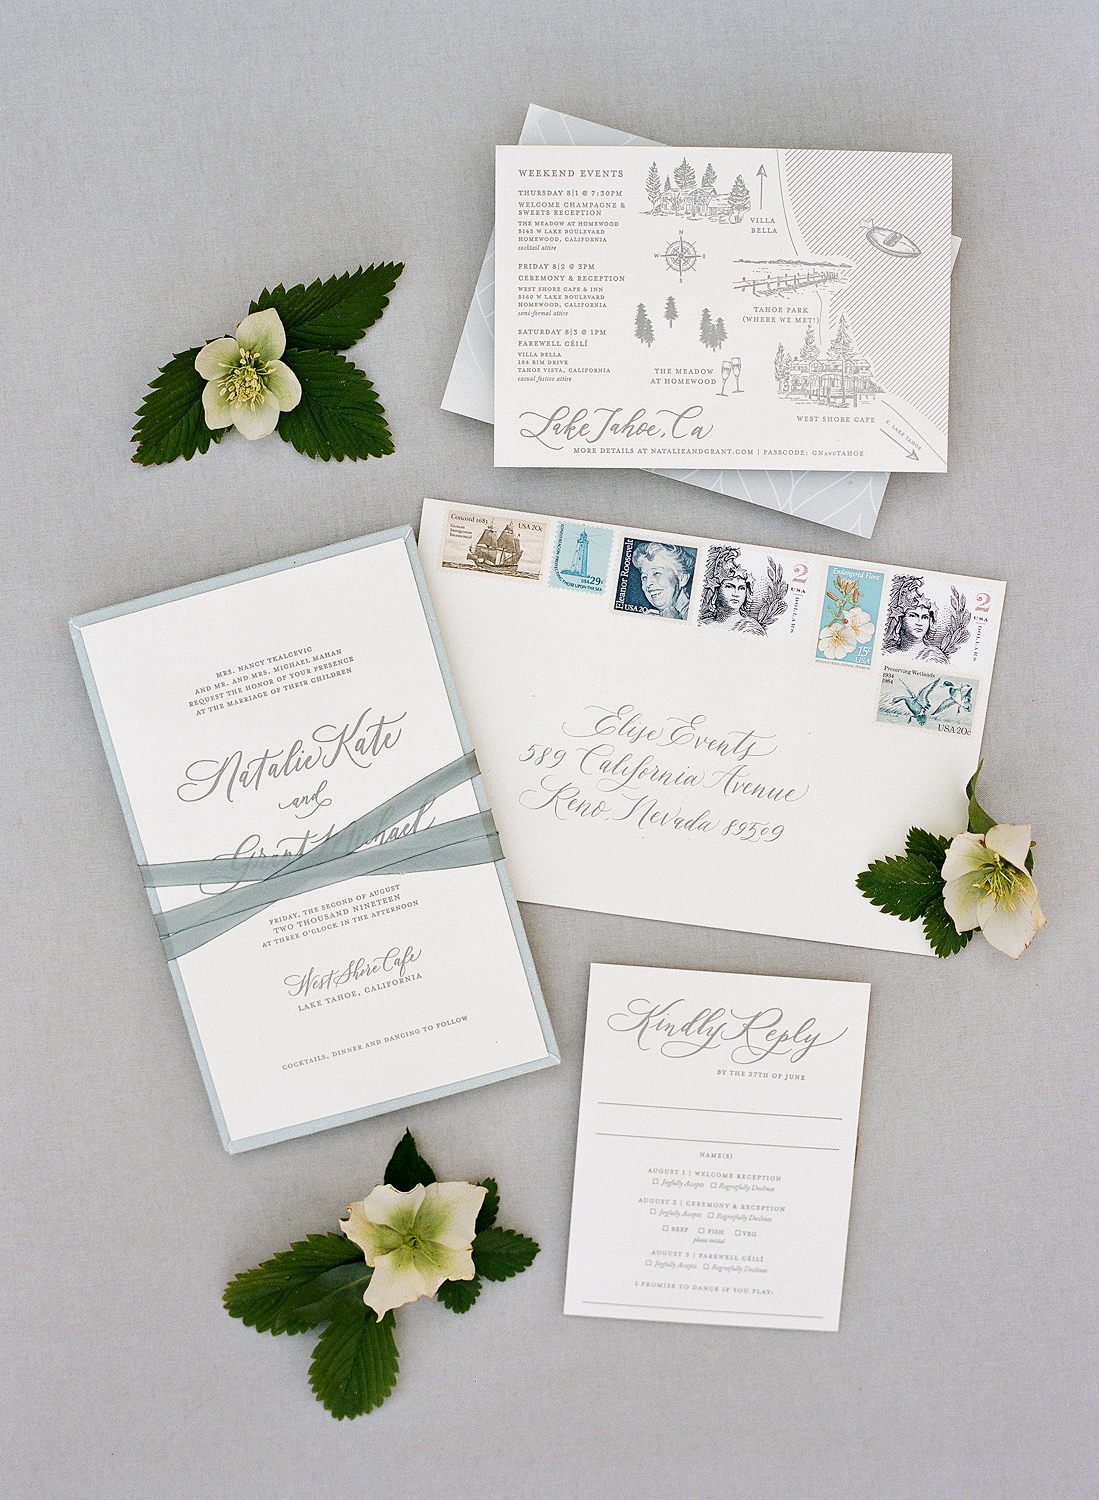 Natalie and Grant wedding gray blue classic invitation suite